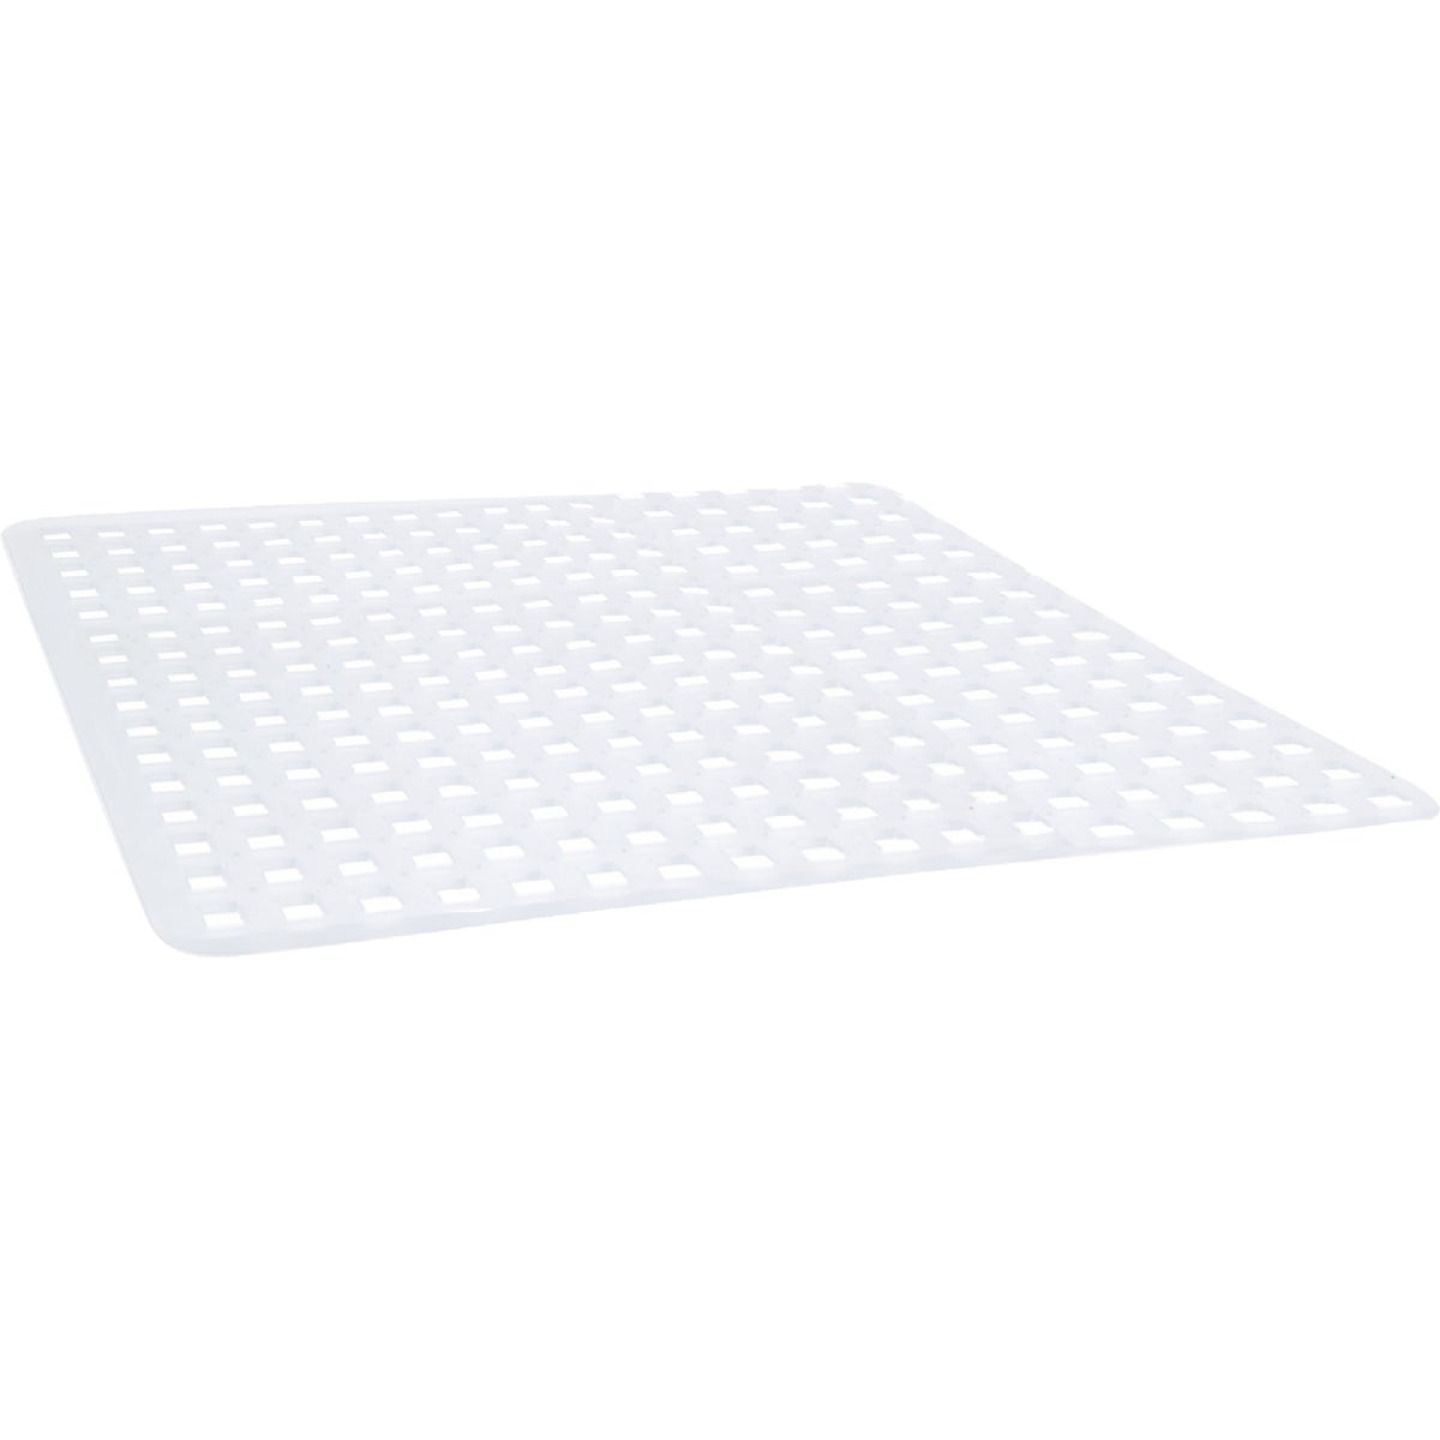 InterDesign Sinkworks 12.5 In. x 16 In. Euro Sink Mat Image 5